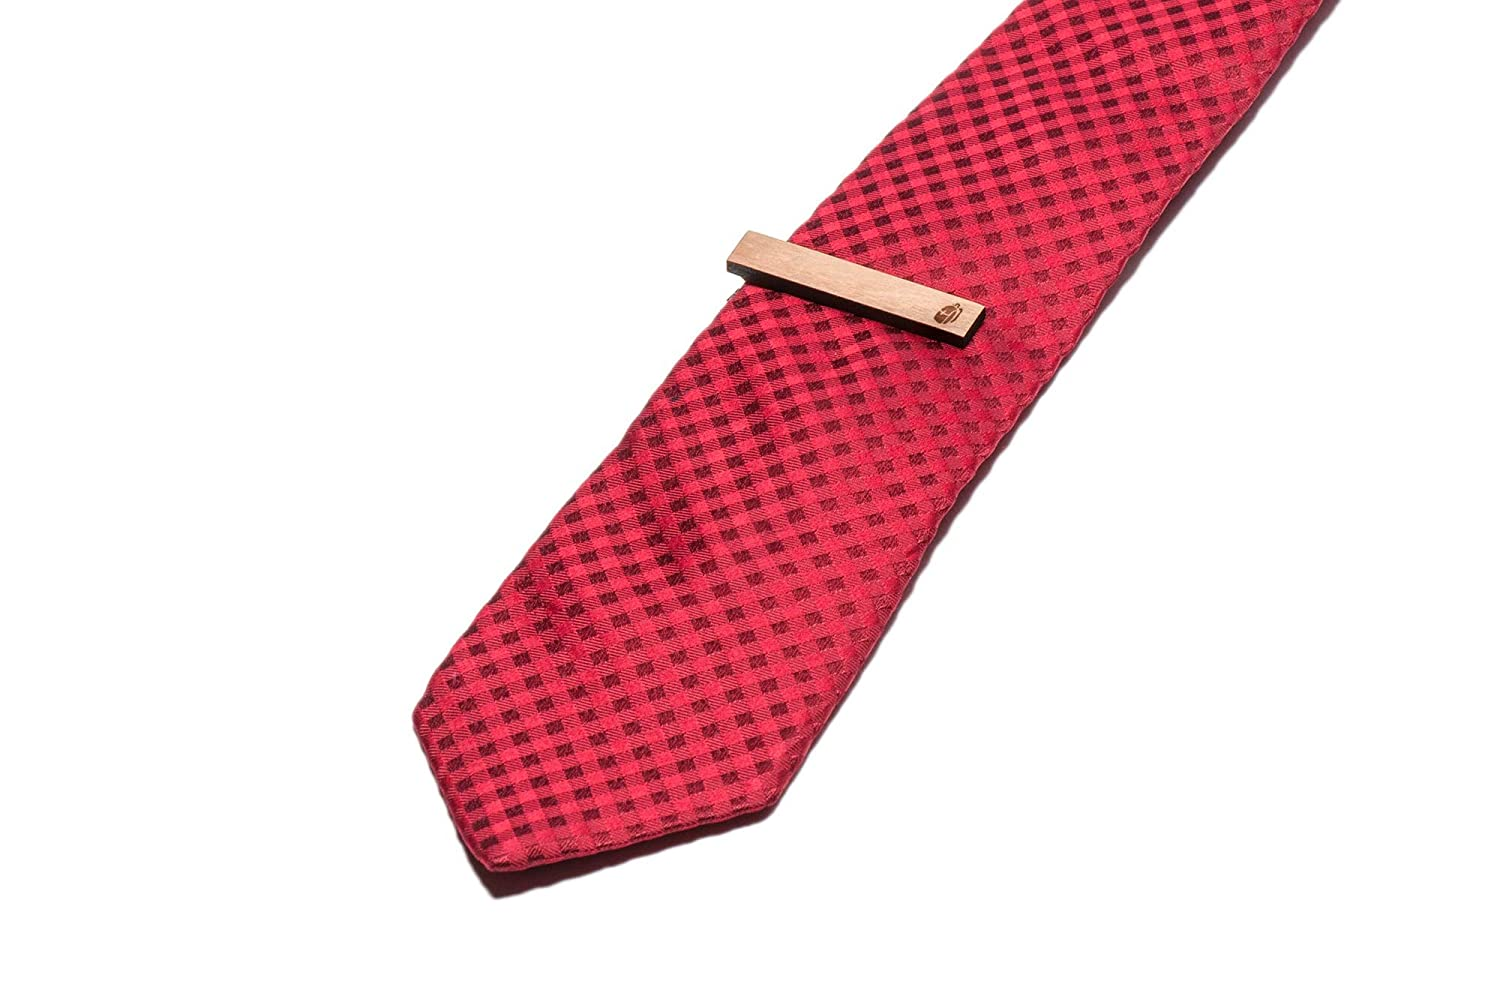 Cherry Wood Tie Bar Engraved in The USA Wooden Accessories Company Wooden Tie Clips with Laser Engraved Backpack Design